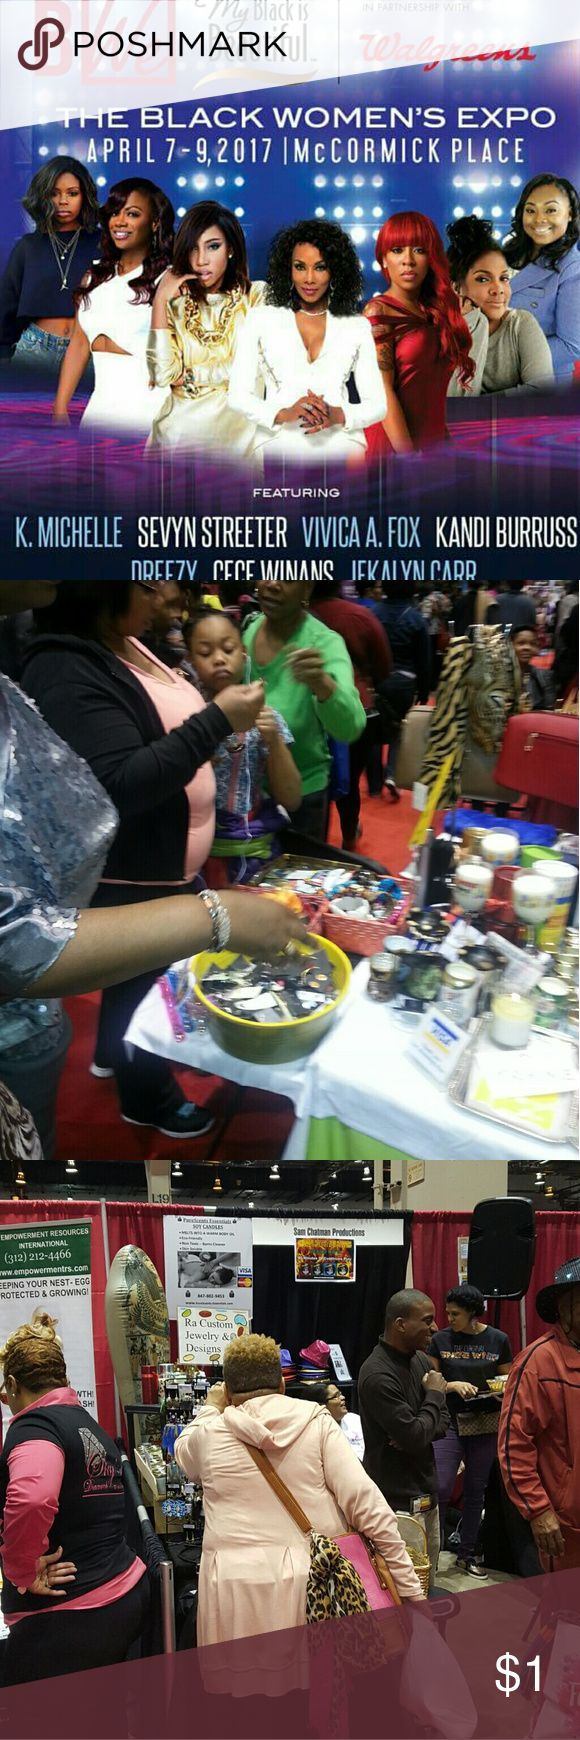 Ra Custom is a the Black Women Expo (Chicago) Ra Custom closet is at the Black Women Expo 2017 Chicago  April 7th Friday,   April 8th Saturday  and April 9th Sunday ?? http://www.theblackwomensexpo.com/ Jewelry Earrings